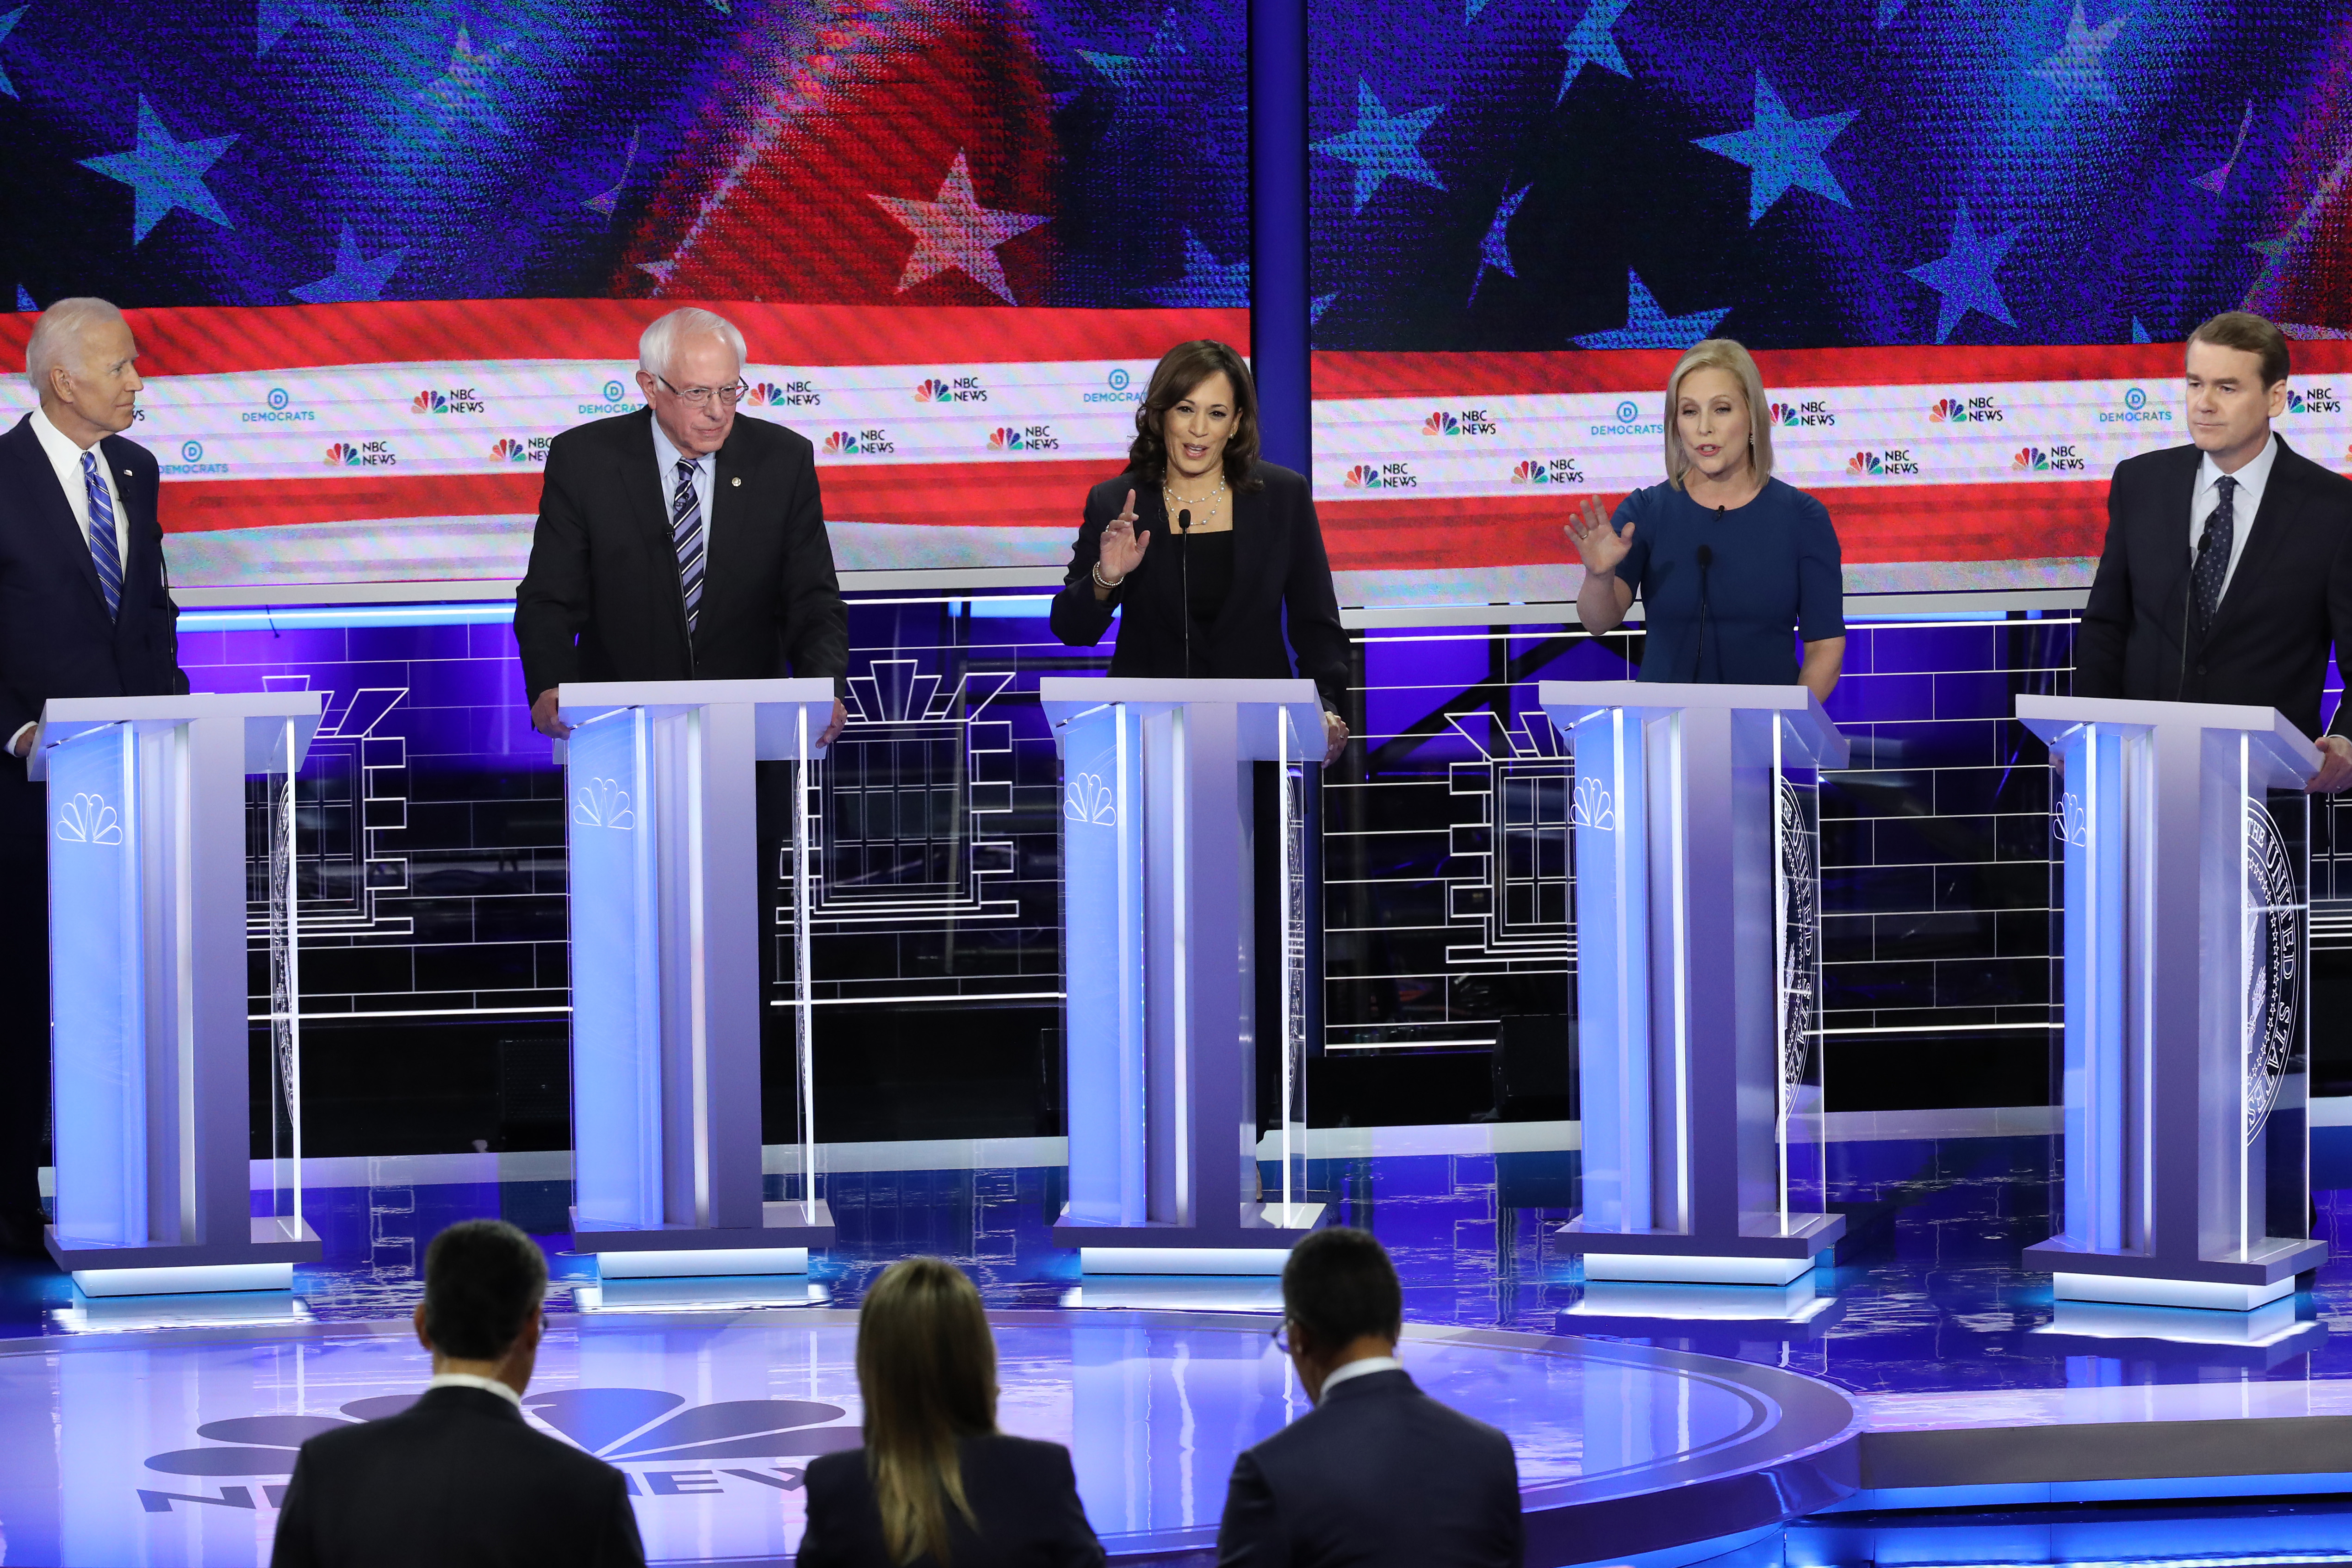 Democratic presidential candidates (L-R) former Vice President Joe Biden, Sen. Bernie Sanders, Sen. Kamala Harris, Sen. Kirsten Gillibrand and Sen. Michael Bennet take part in the second night of the first Democratic presidential debate on June 27, 2019 in Miami, Florida. (Photo by Drew Angerer/Getty Images)